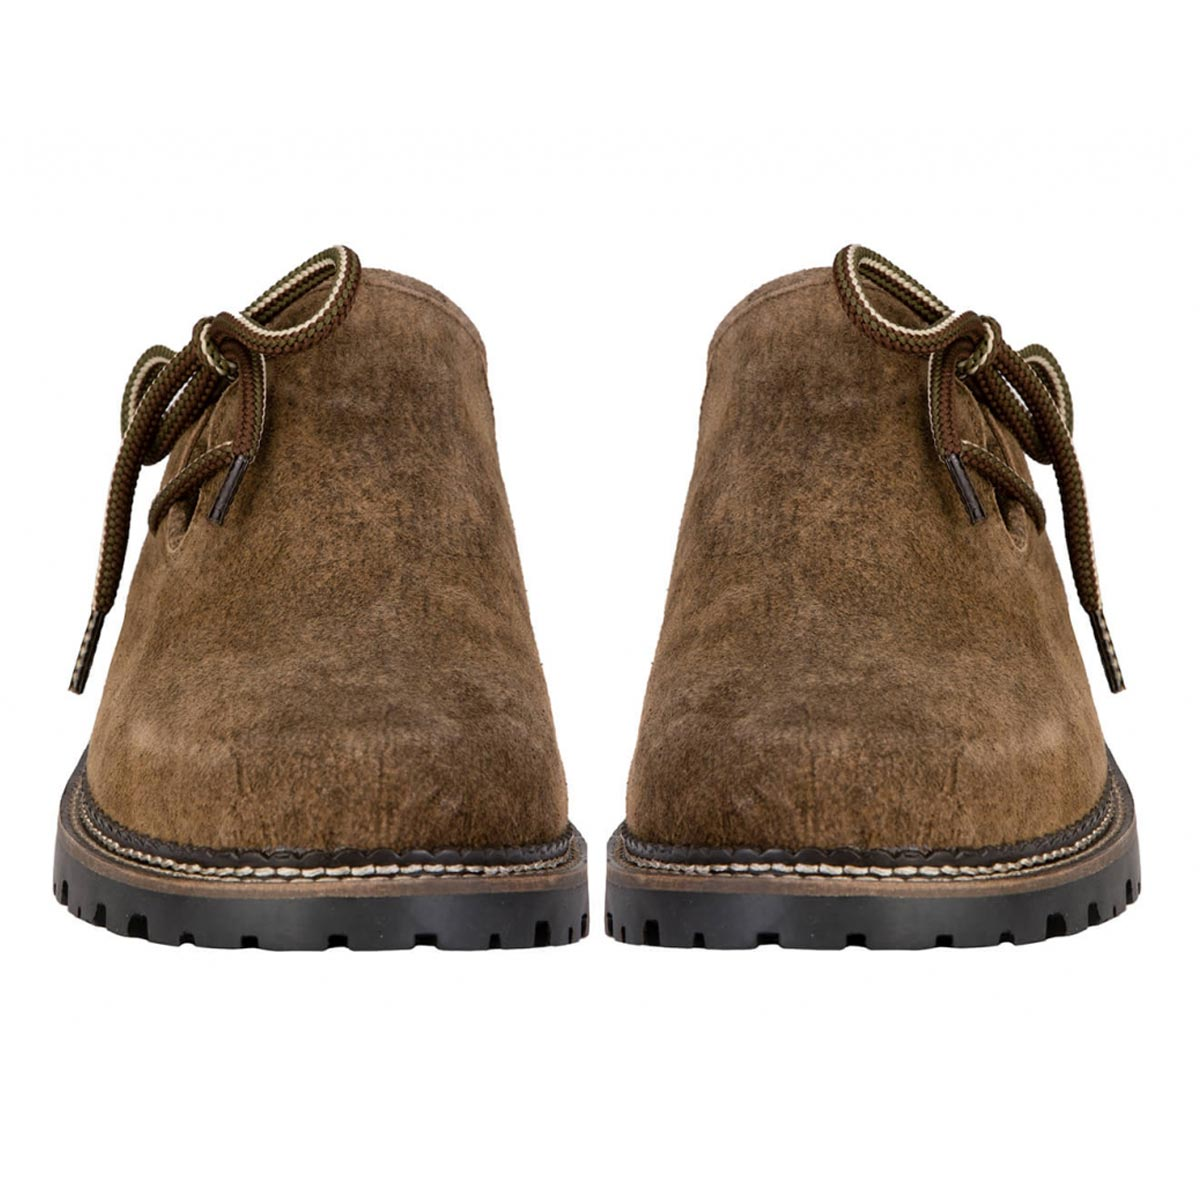 BROWN MENS ROUGH STYLE SHOES